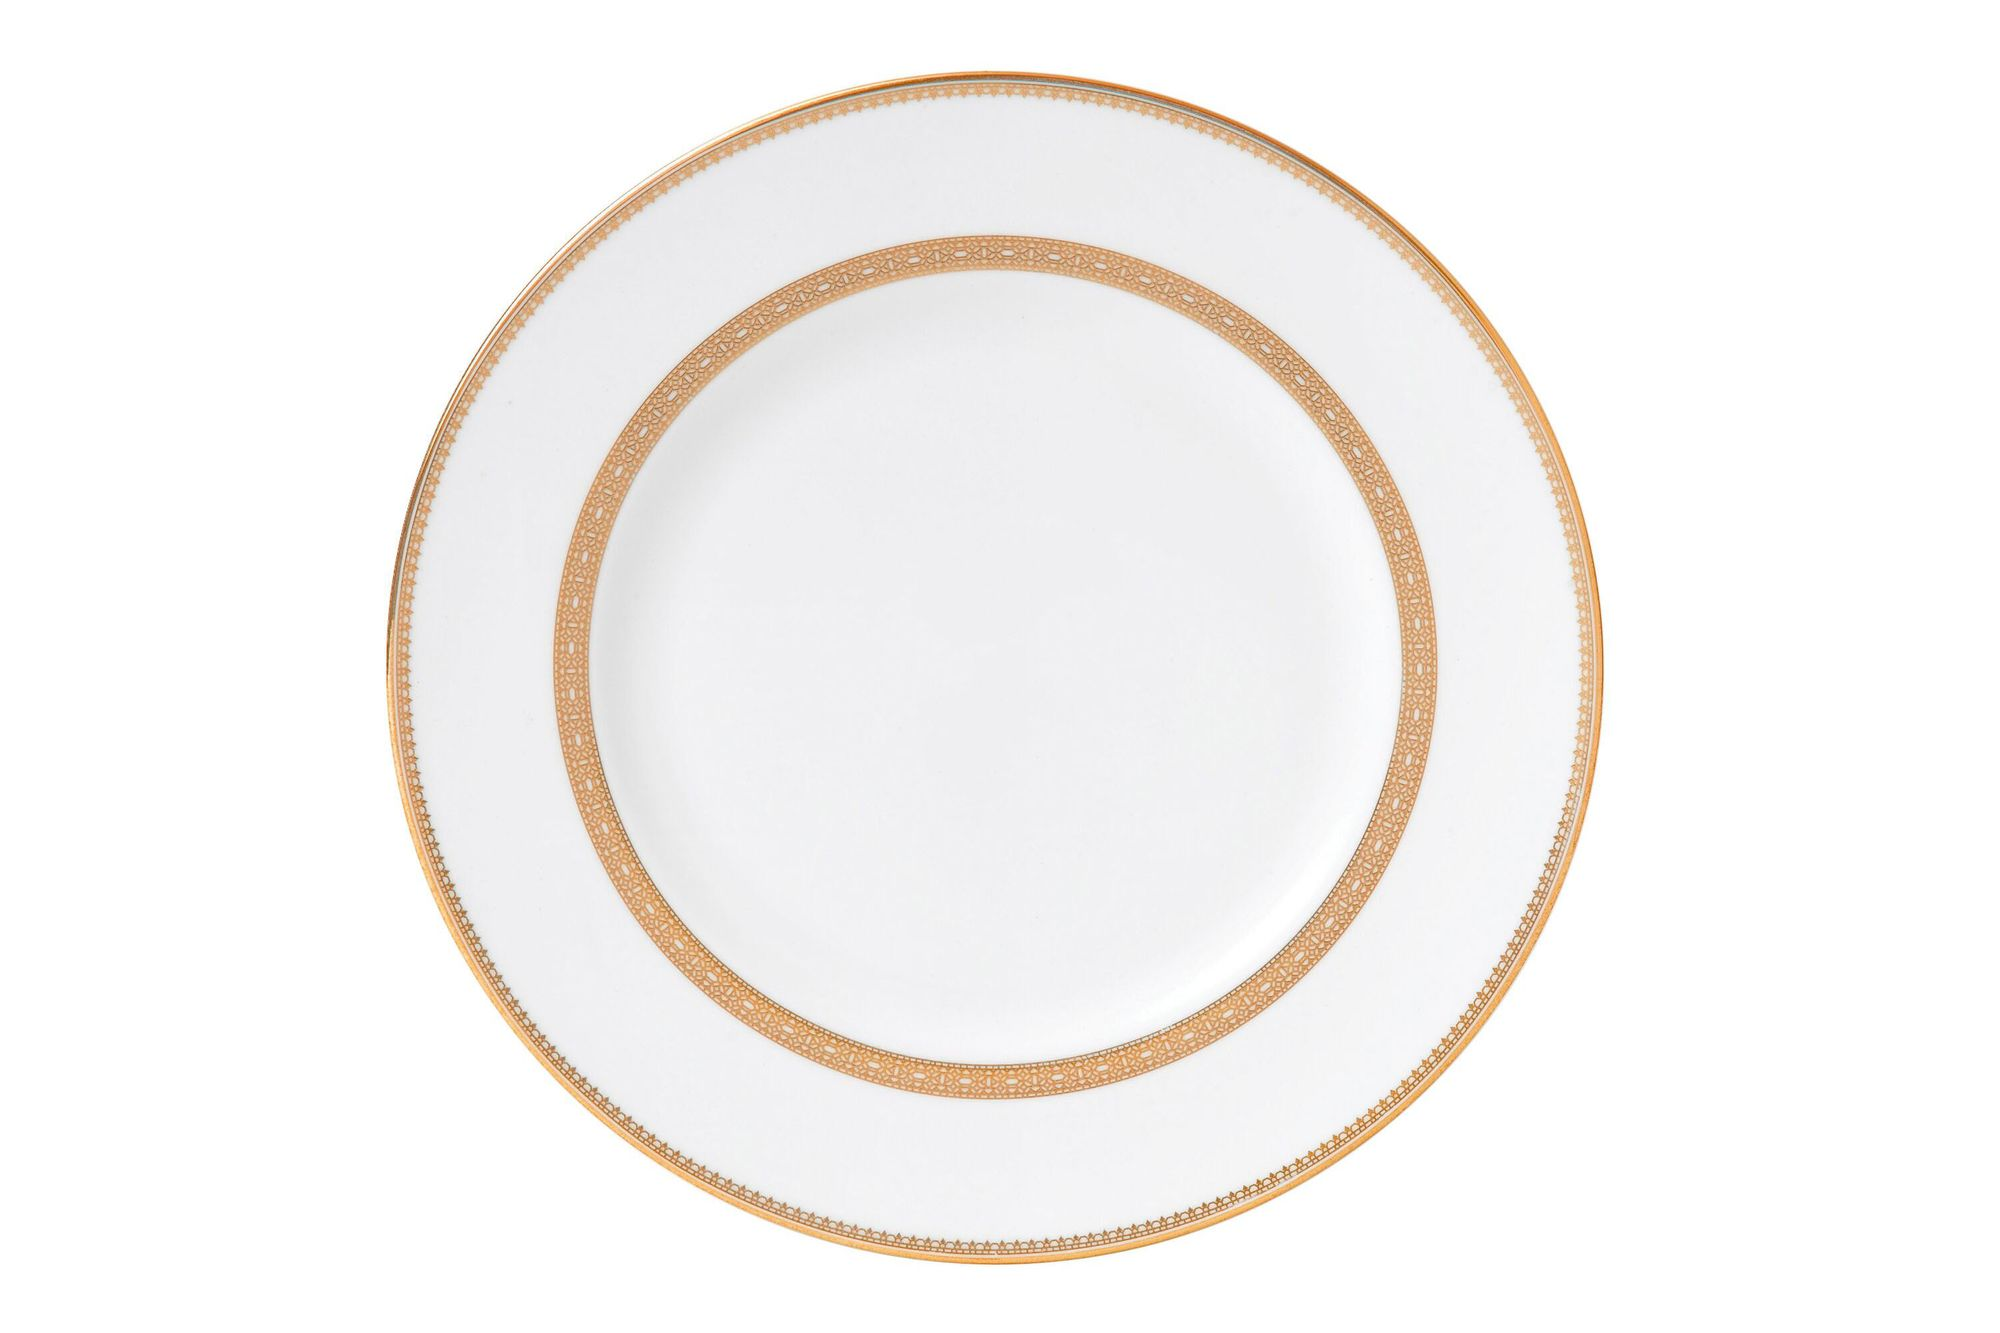 Vera Wang for Wedgwood Lace Gold Dinner Plate 27cm thumb 1